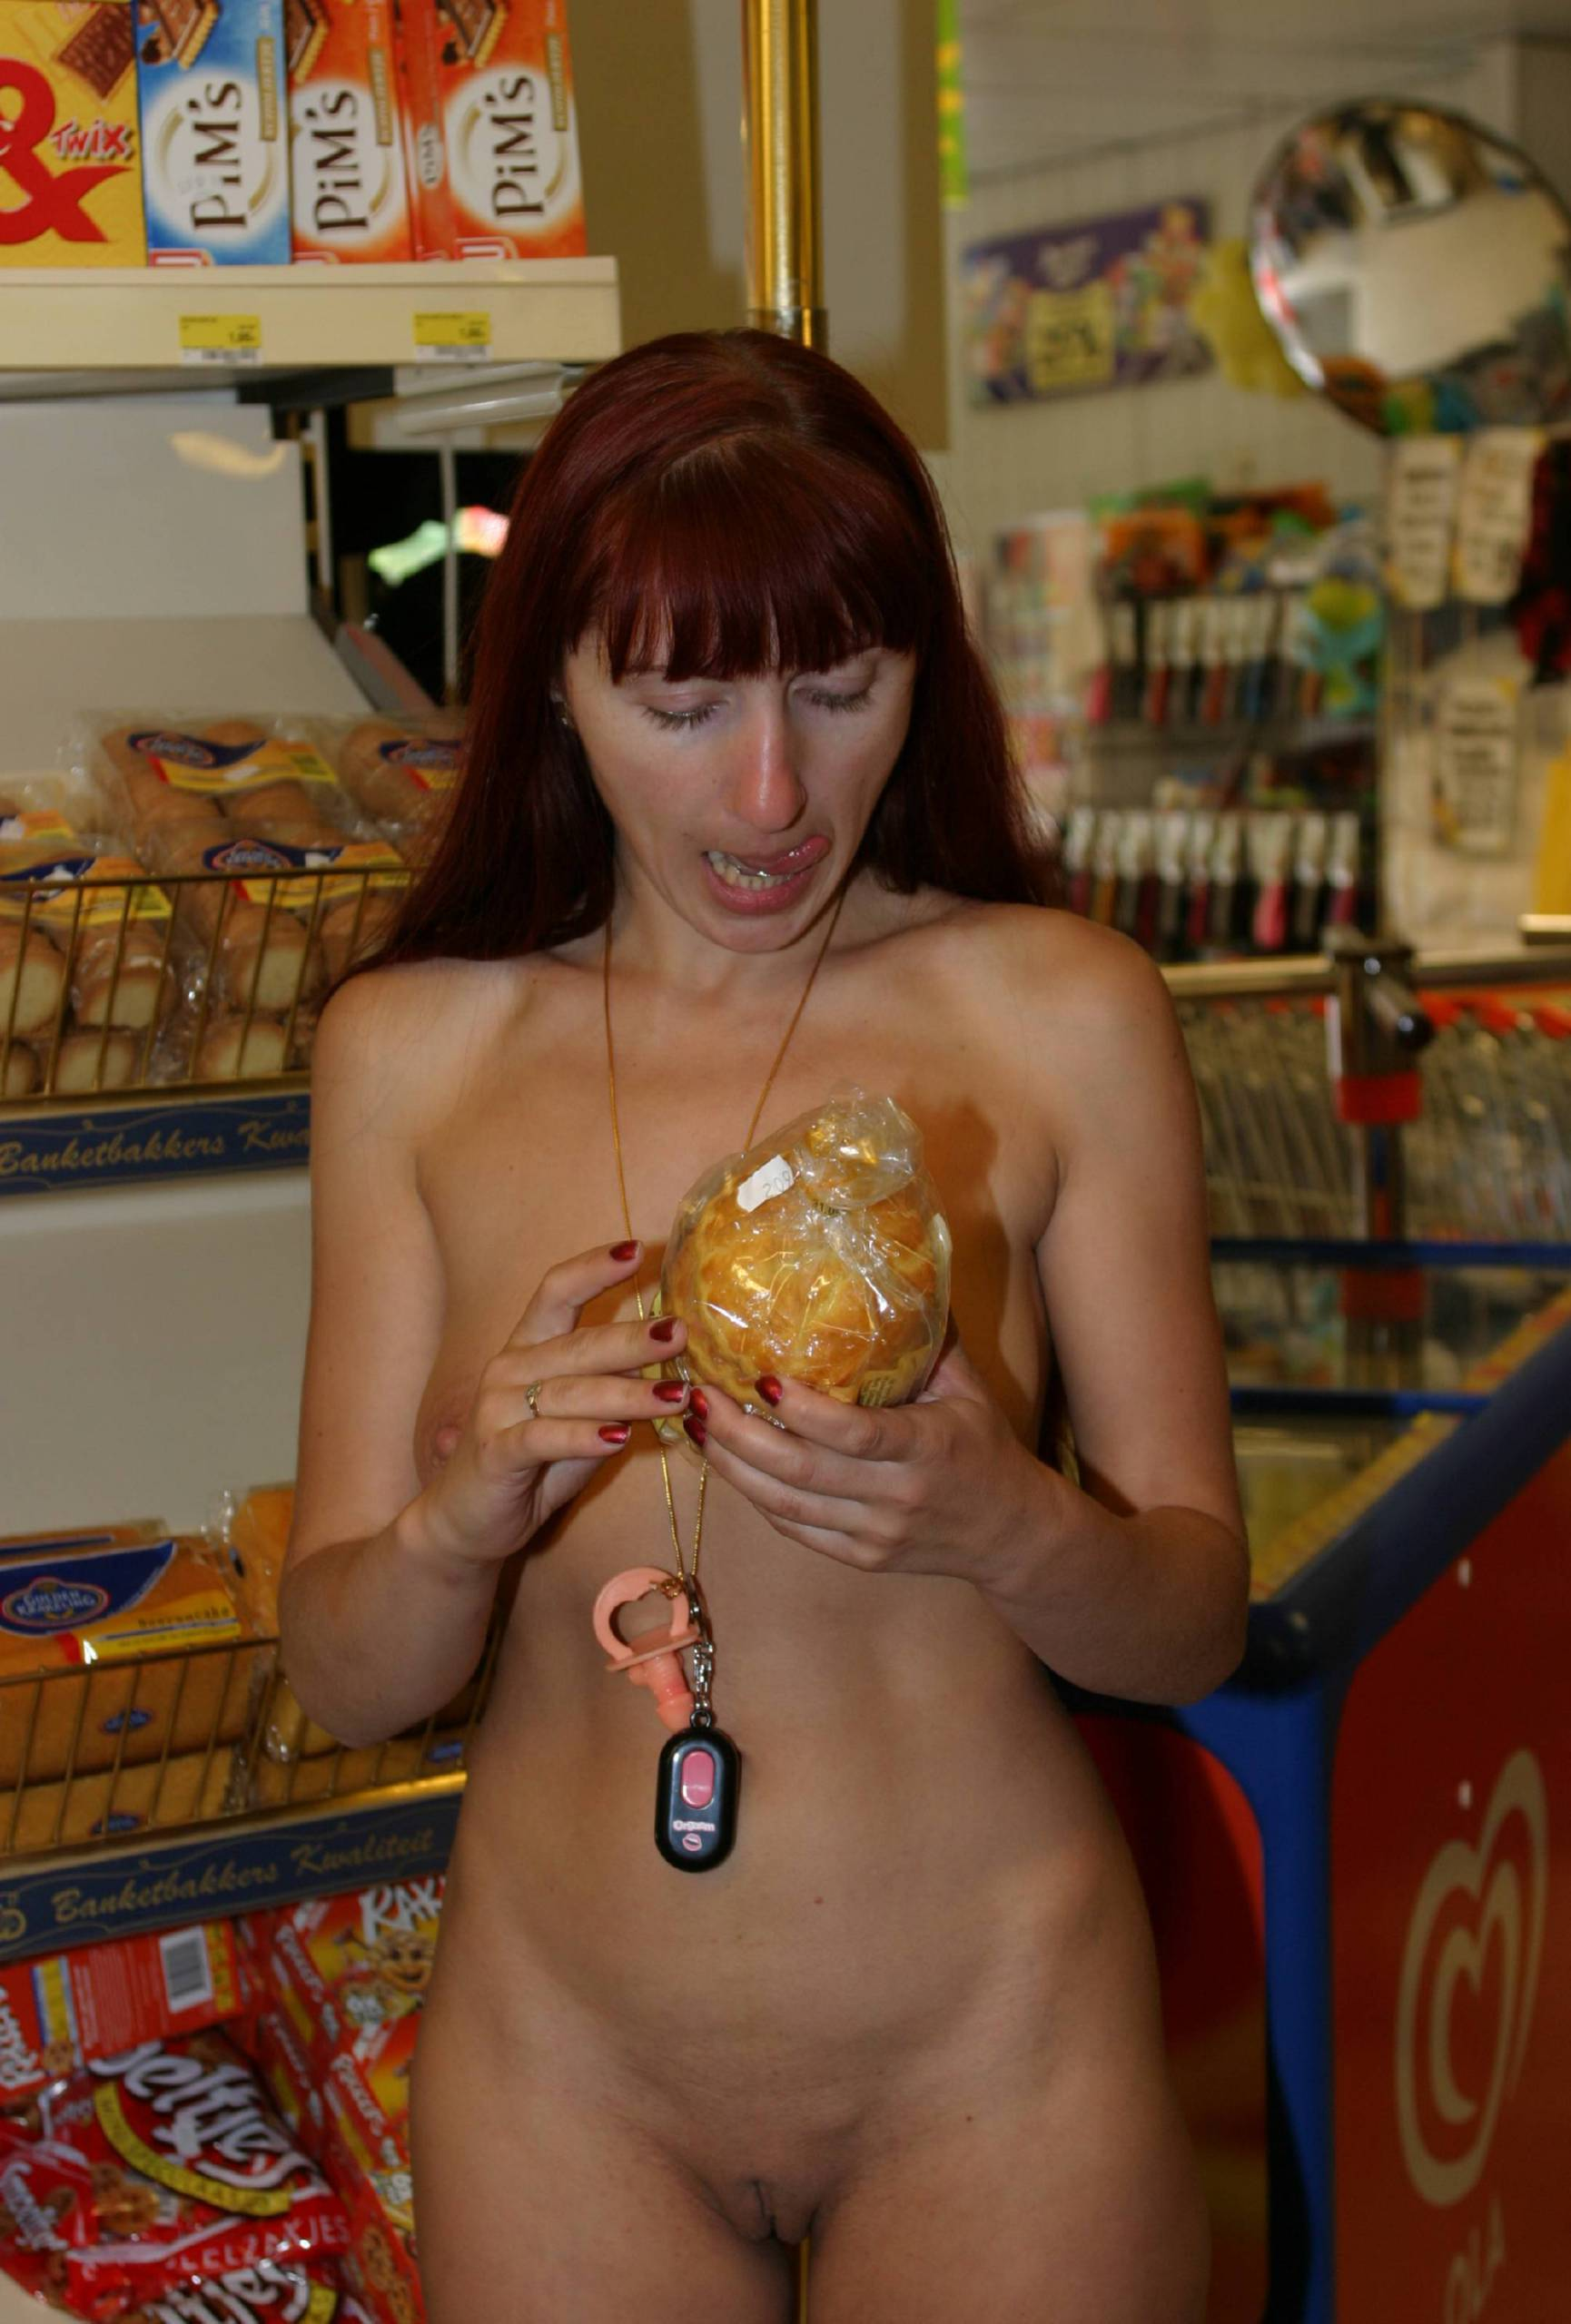 Nudist Gallery Holland Store Shopping - 1